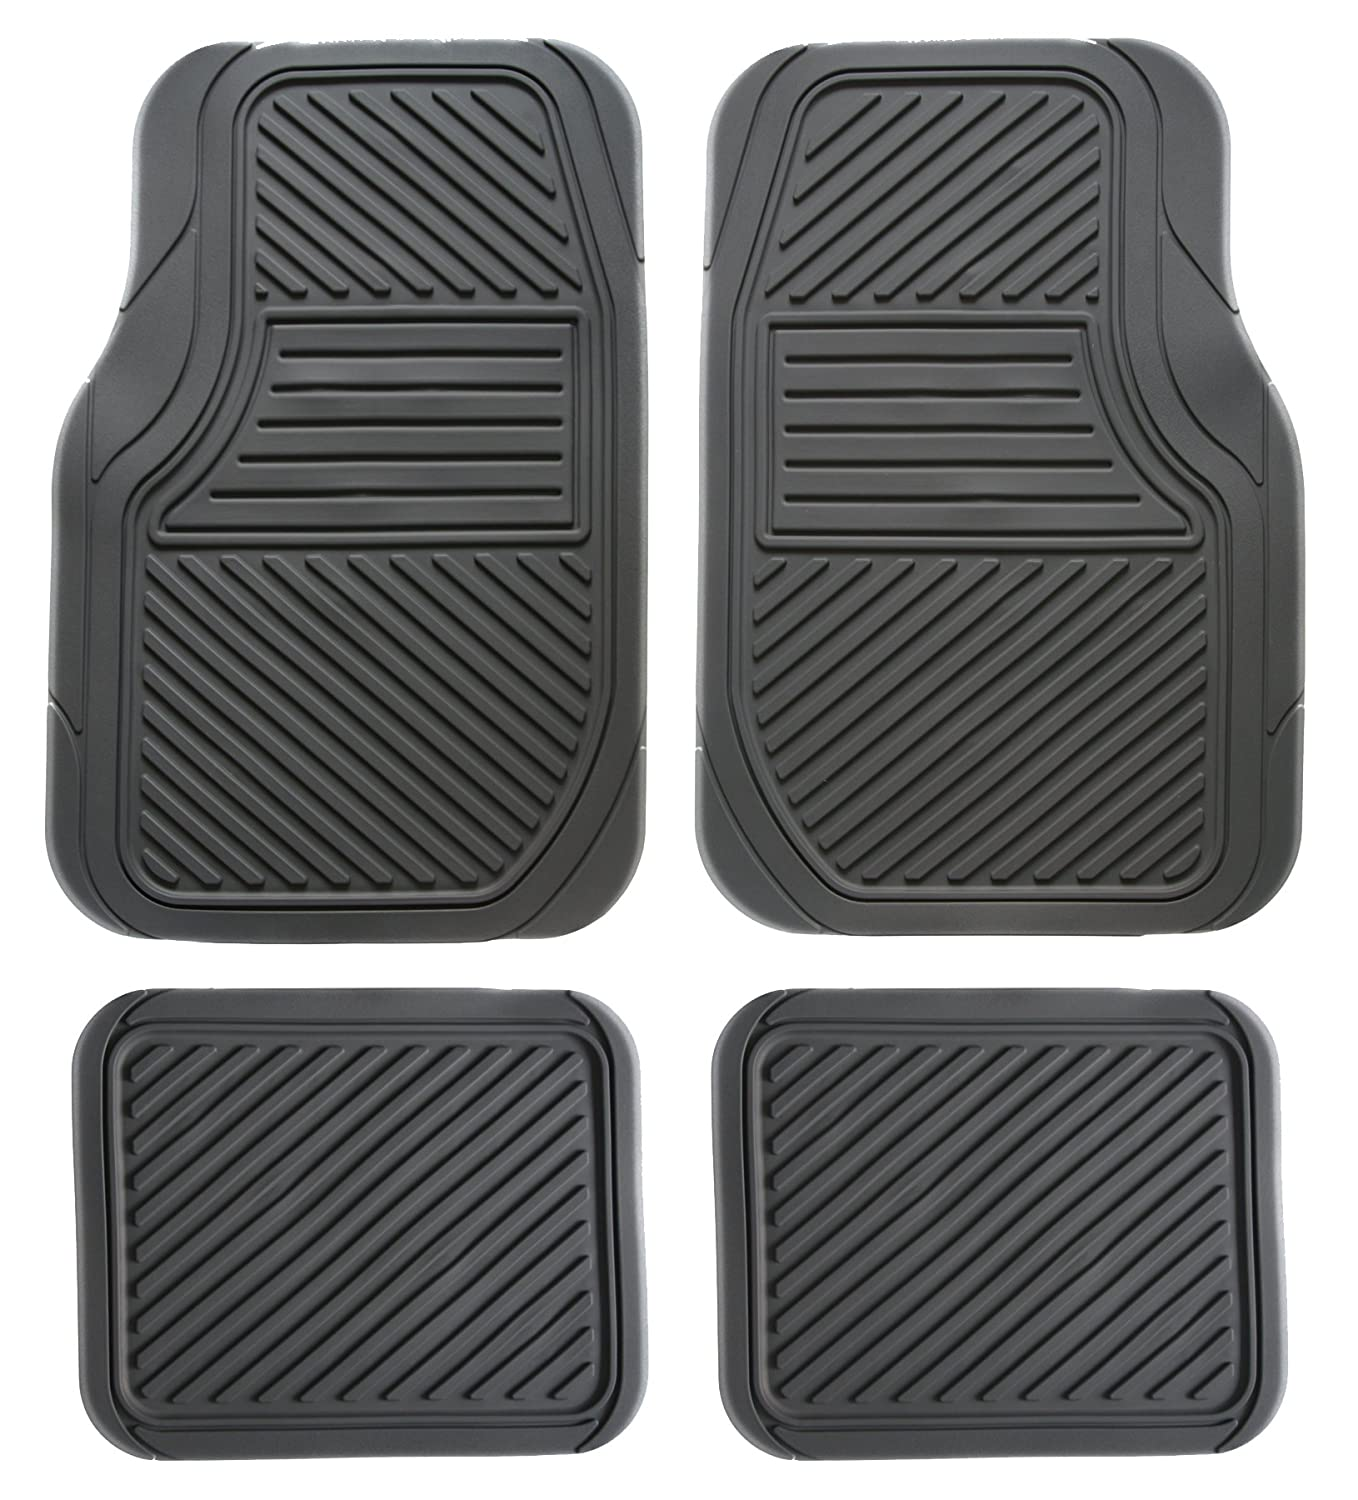 Black Koolatron Pants Saver Better All Season 4 Piece All Weather Car Mat Set